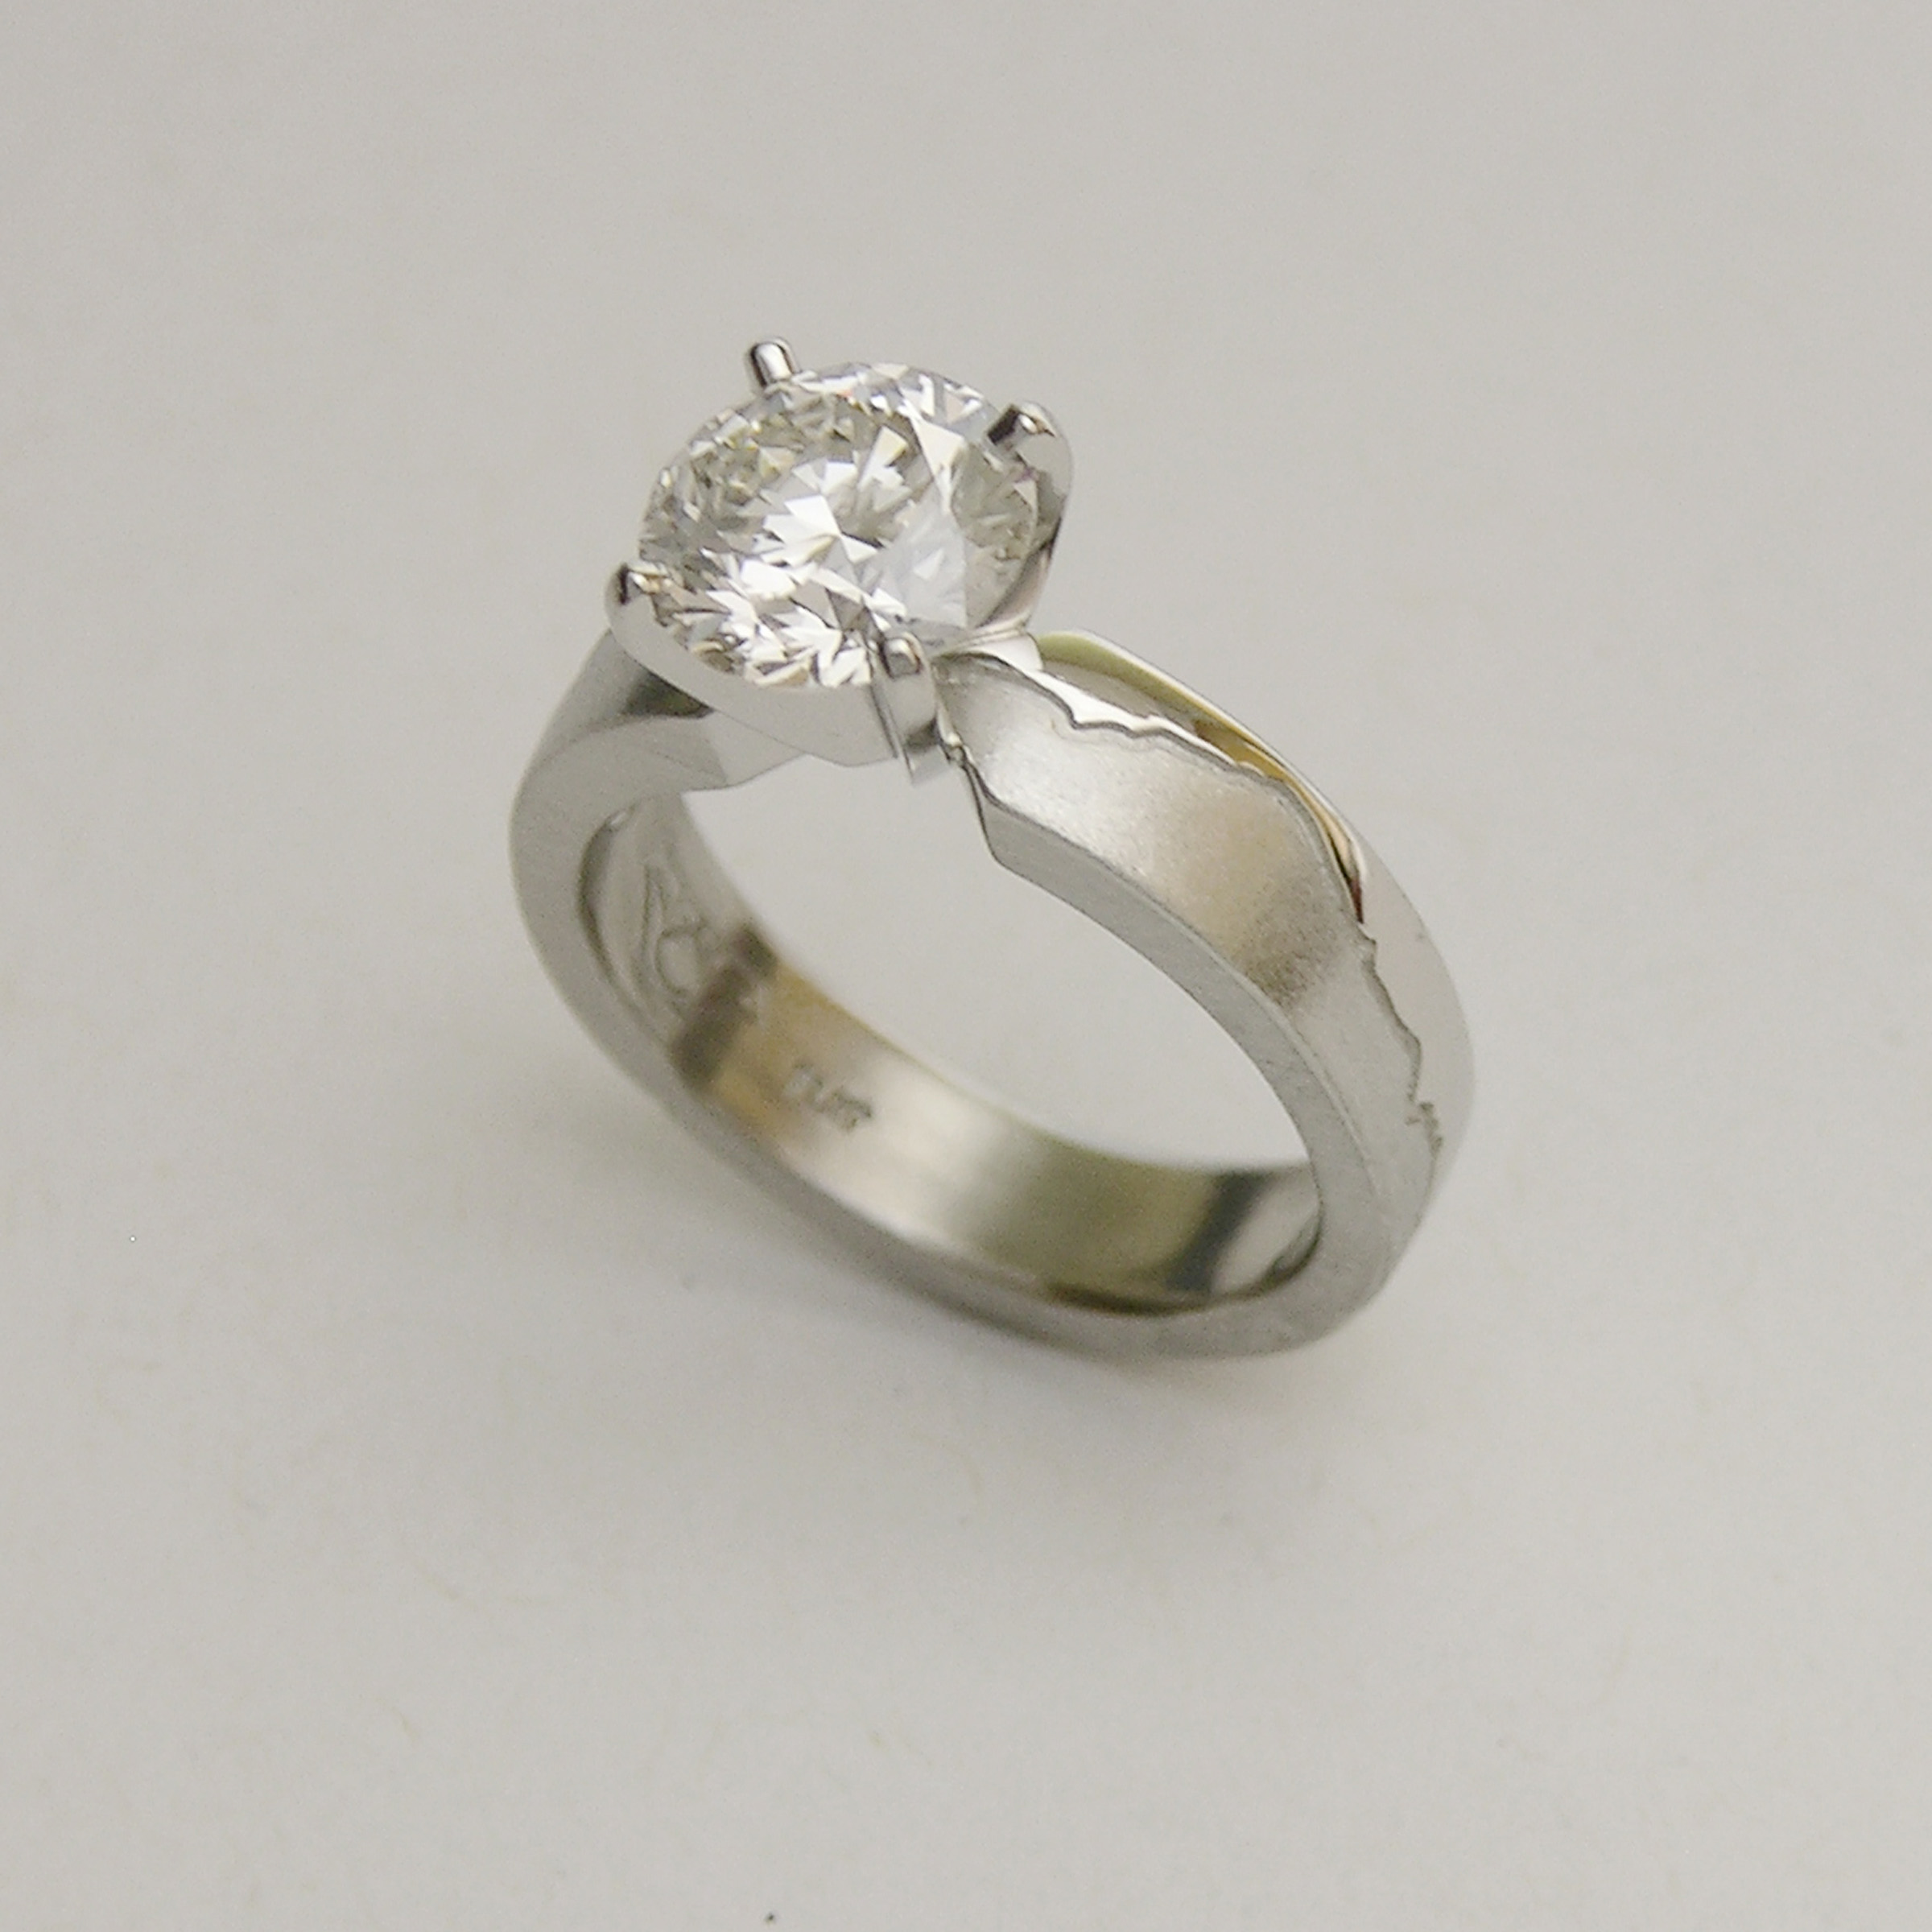 Platinum Pikes Peak Skyline Engagement ring wiht 1.75carat Lab Grown Diamond in 4prong head